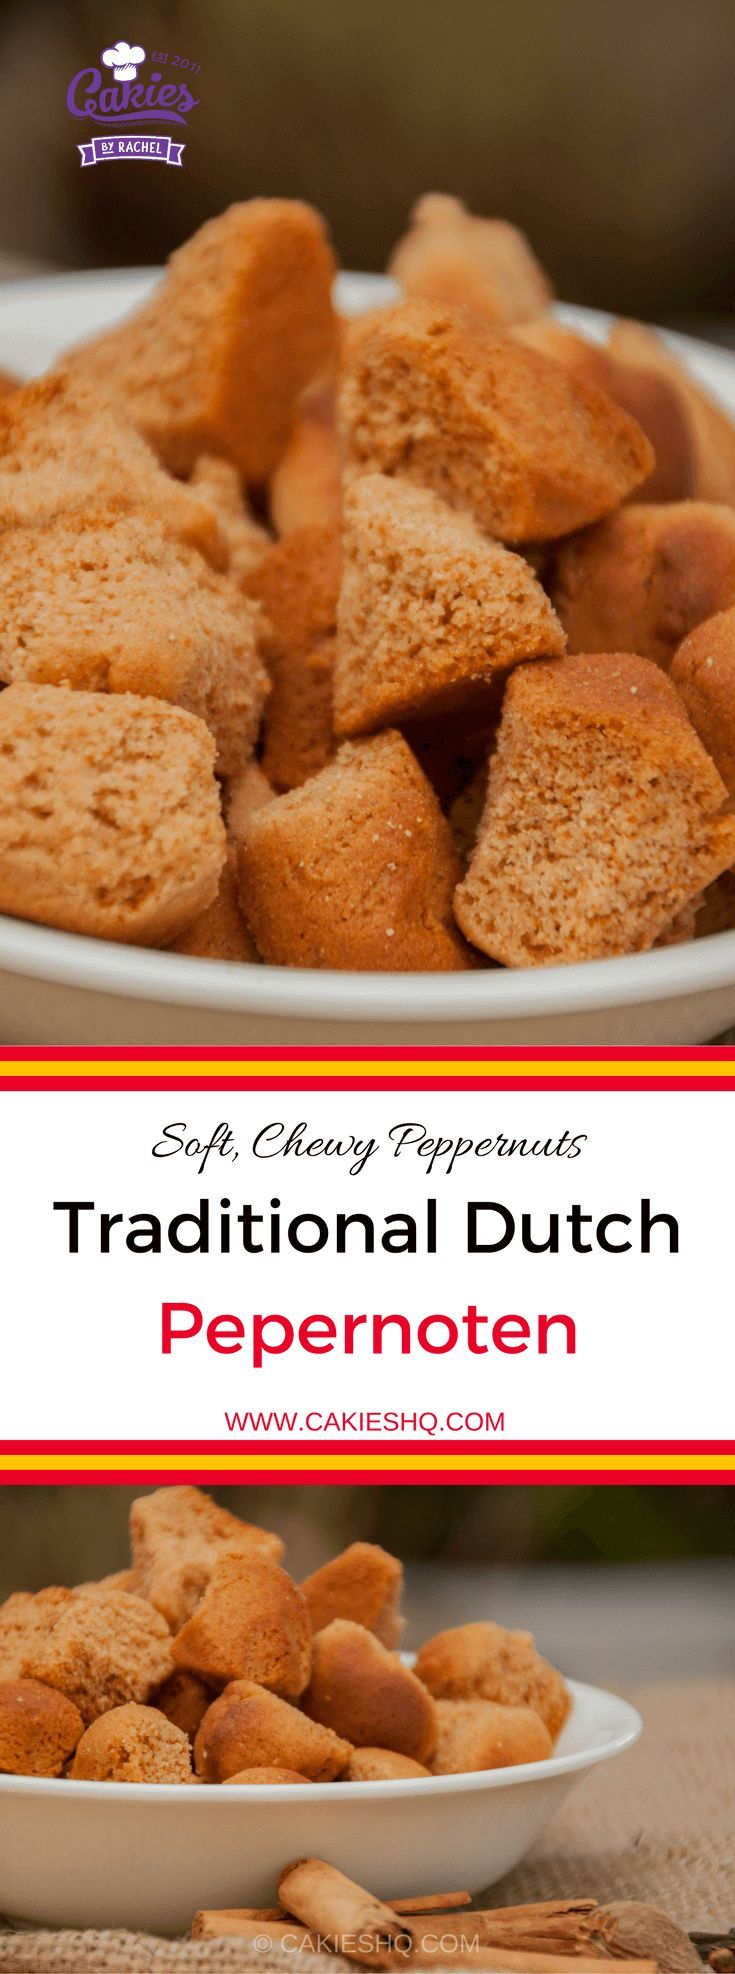 Traditional Dutch Pepernoten are more soft and chewy versus the crunchy pepernoten. A nice recipe for Sinterklaas, Thanksgiving or Christmas  #dutch #dutchrecipe #dutchfood